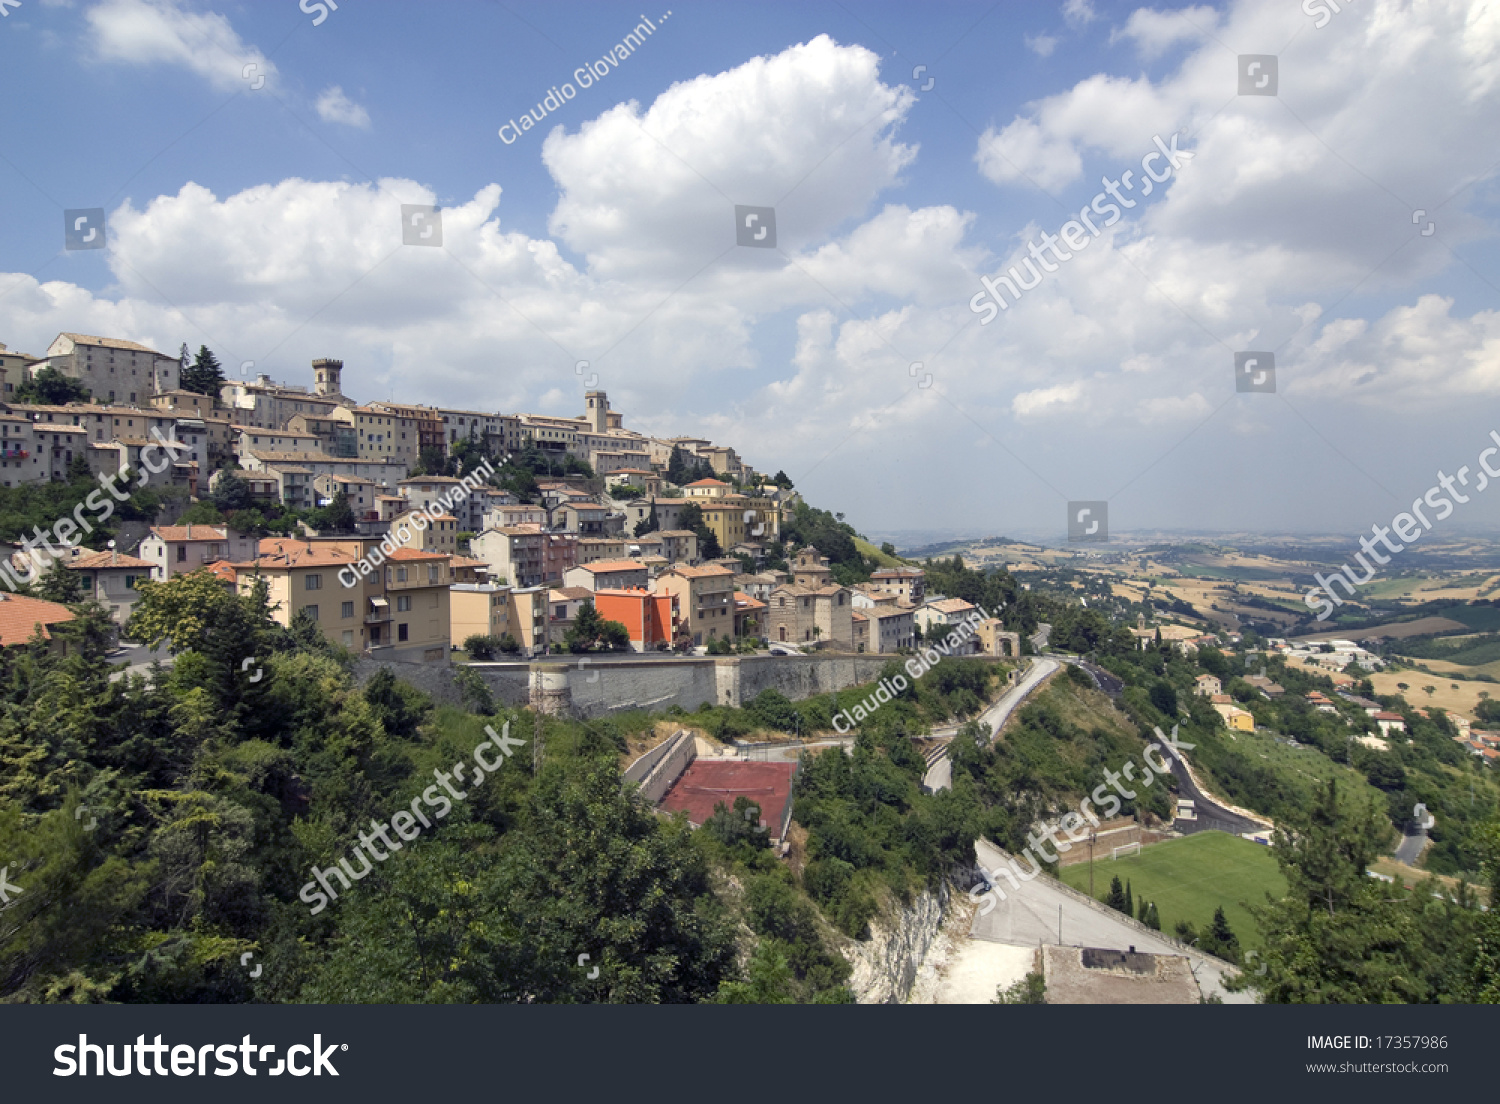 Arcevia Italy  City new picture : Panoramic View Of Arcevia Ancona, Marche, Italy Stock Photo 17357986 ...